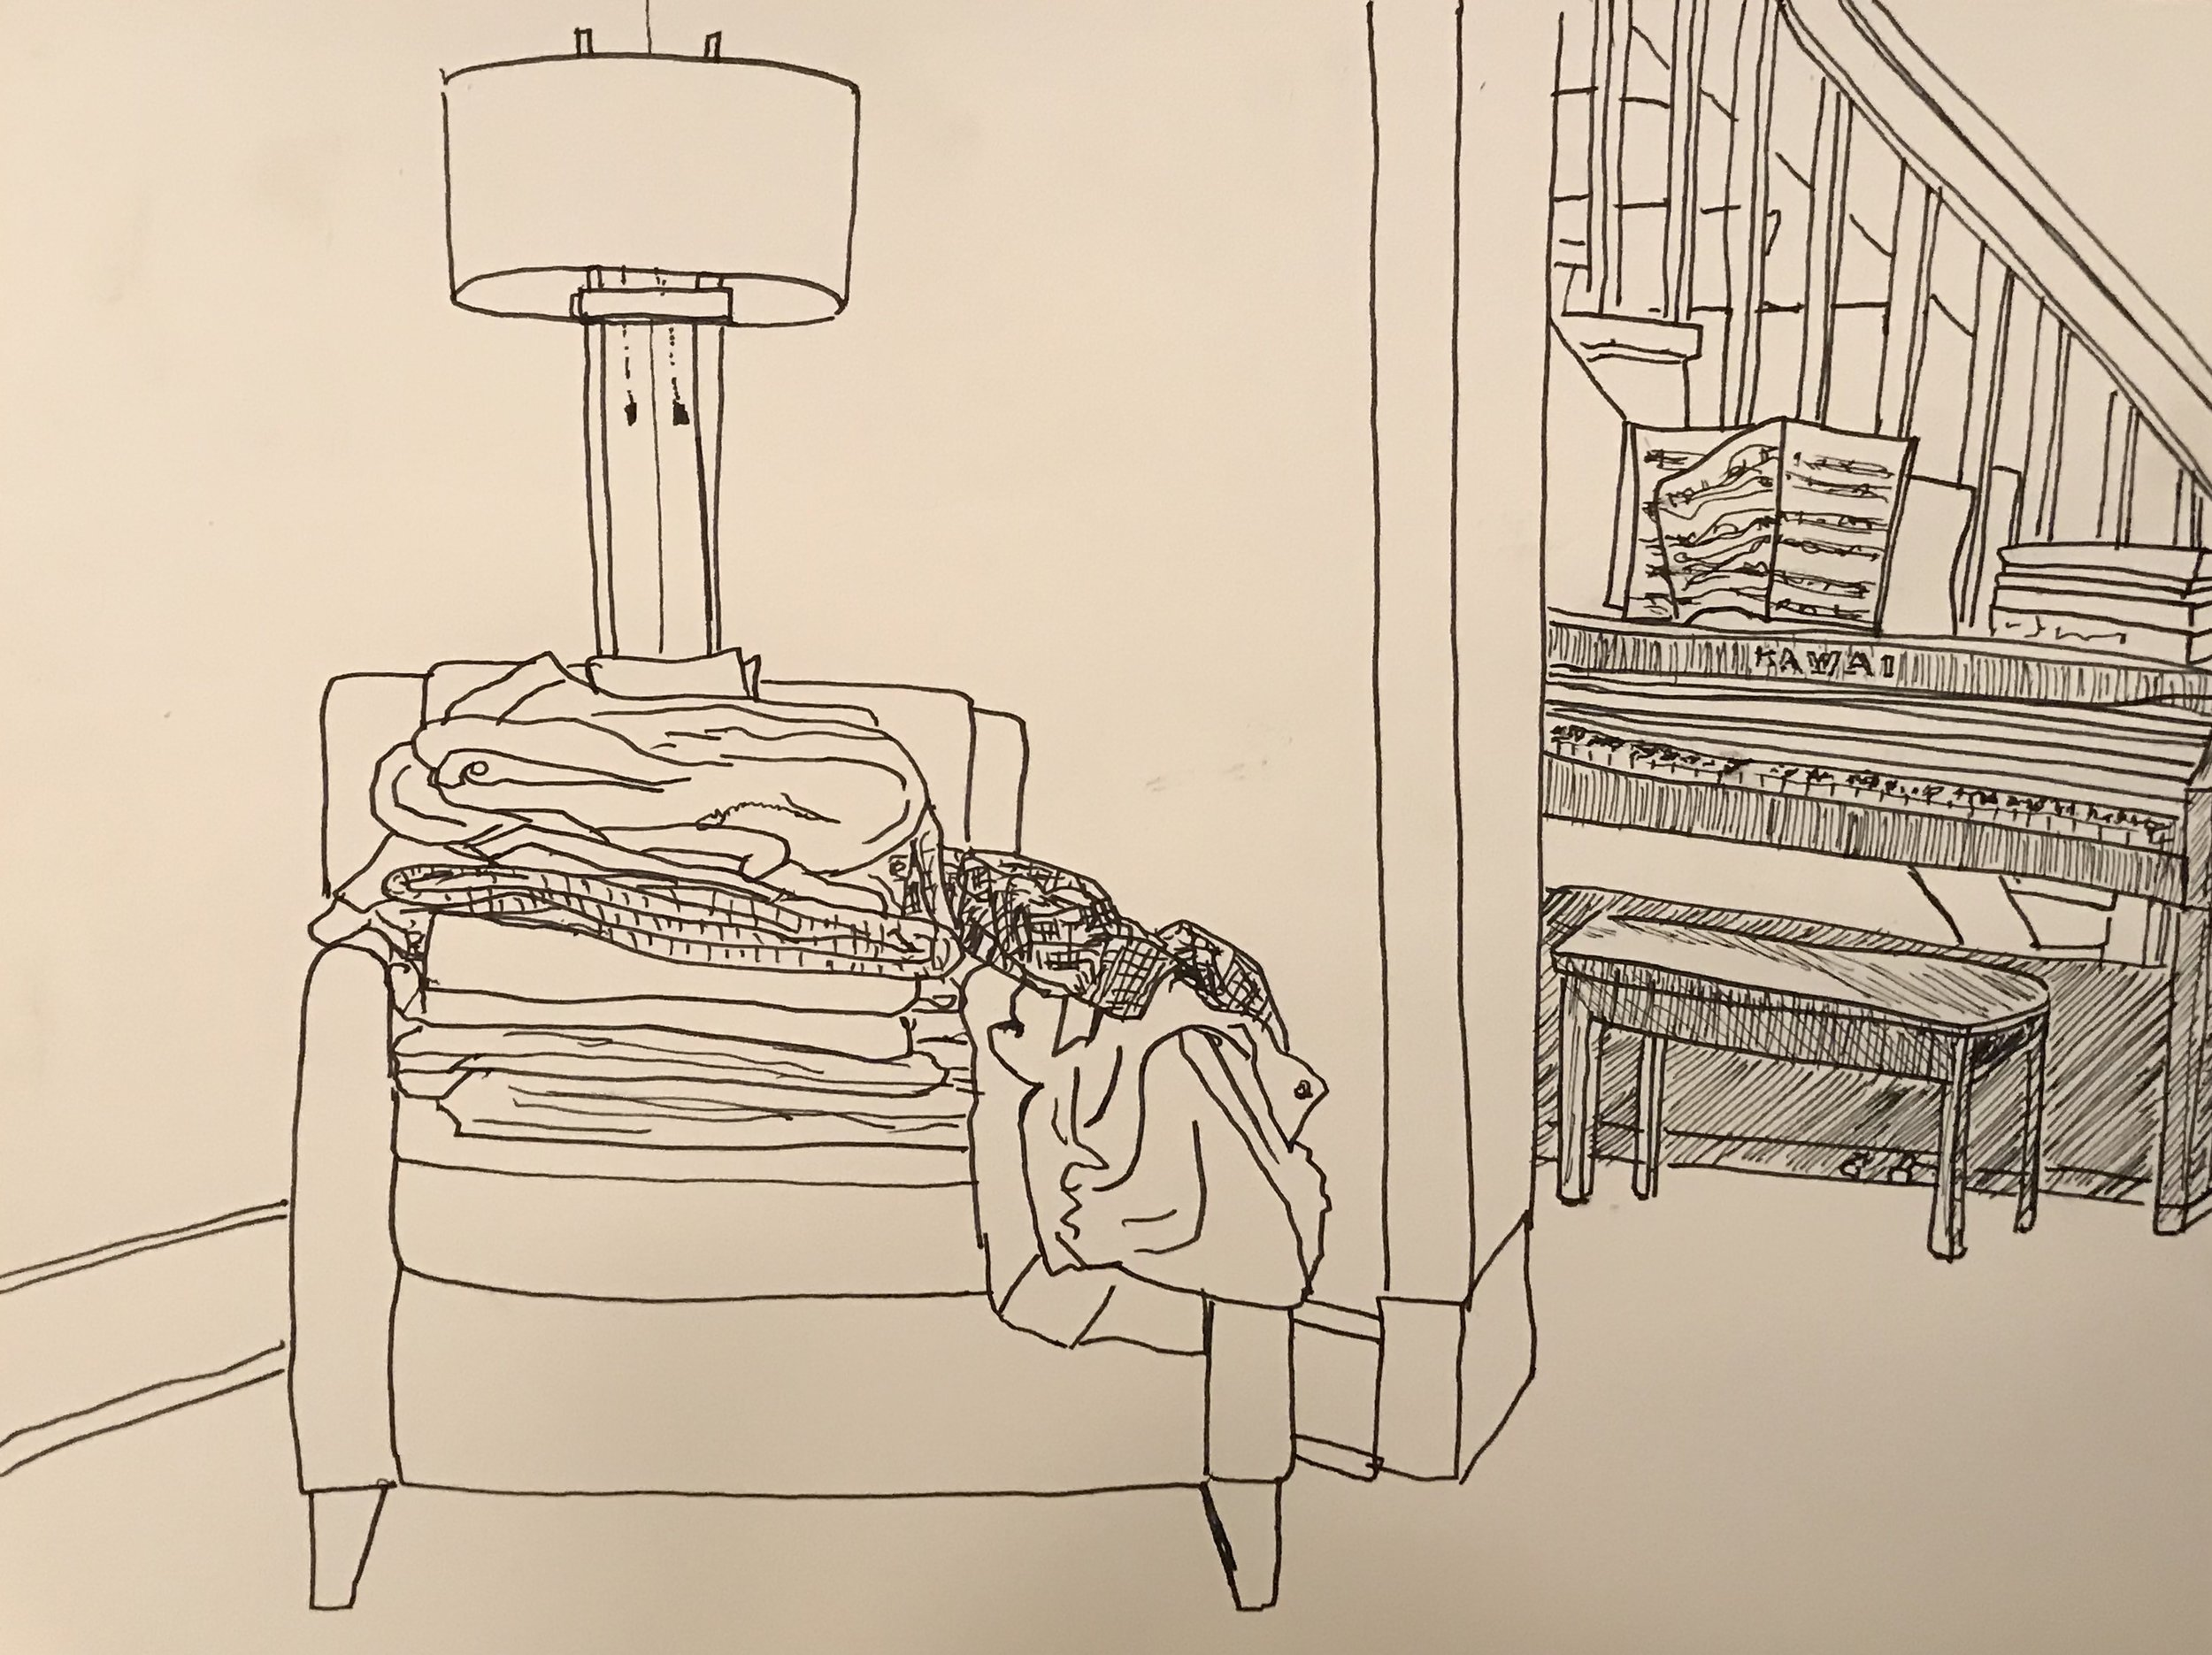 Sorting laundry, pen & ink,9 x 12, SOLD